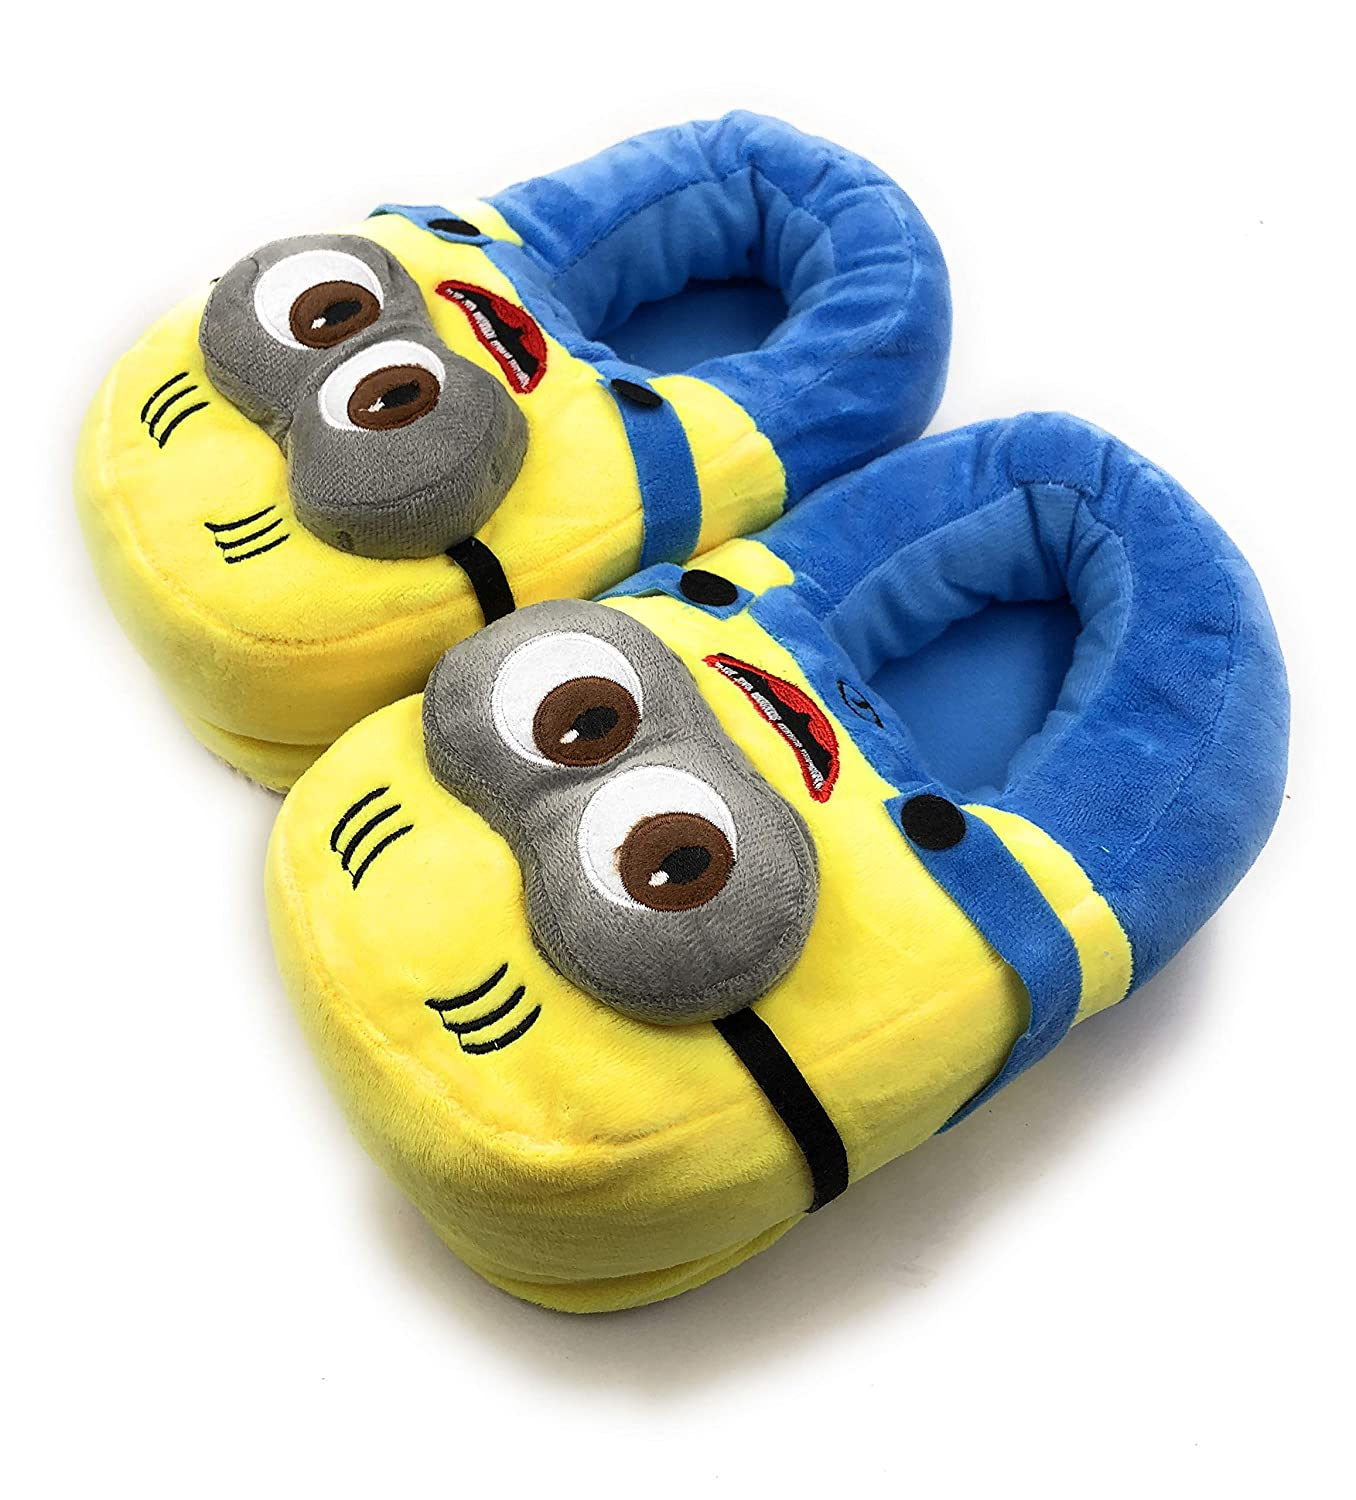 24x7 eMall Cute Plush Minion Shoes Free Size Indoor Slipper Funny Soft Plush for Adults Kids Teens Bedroom with Non-Skid Footpads Yellow